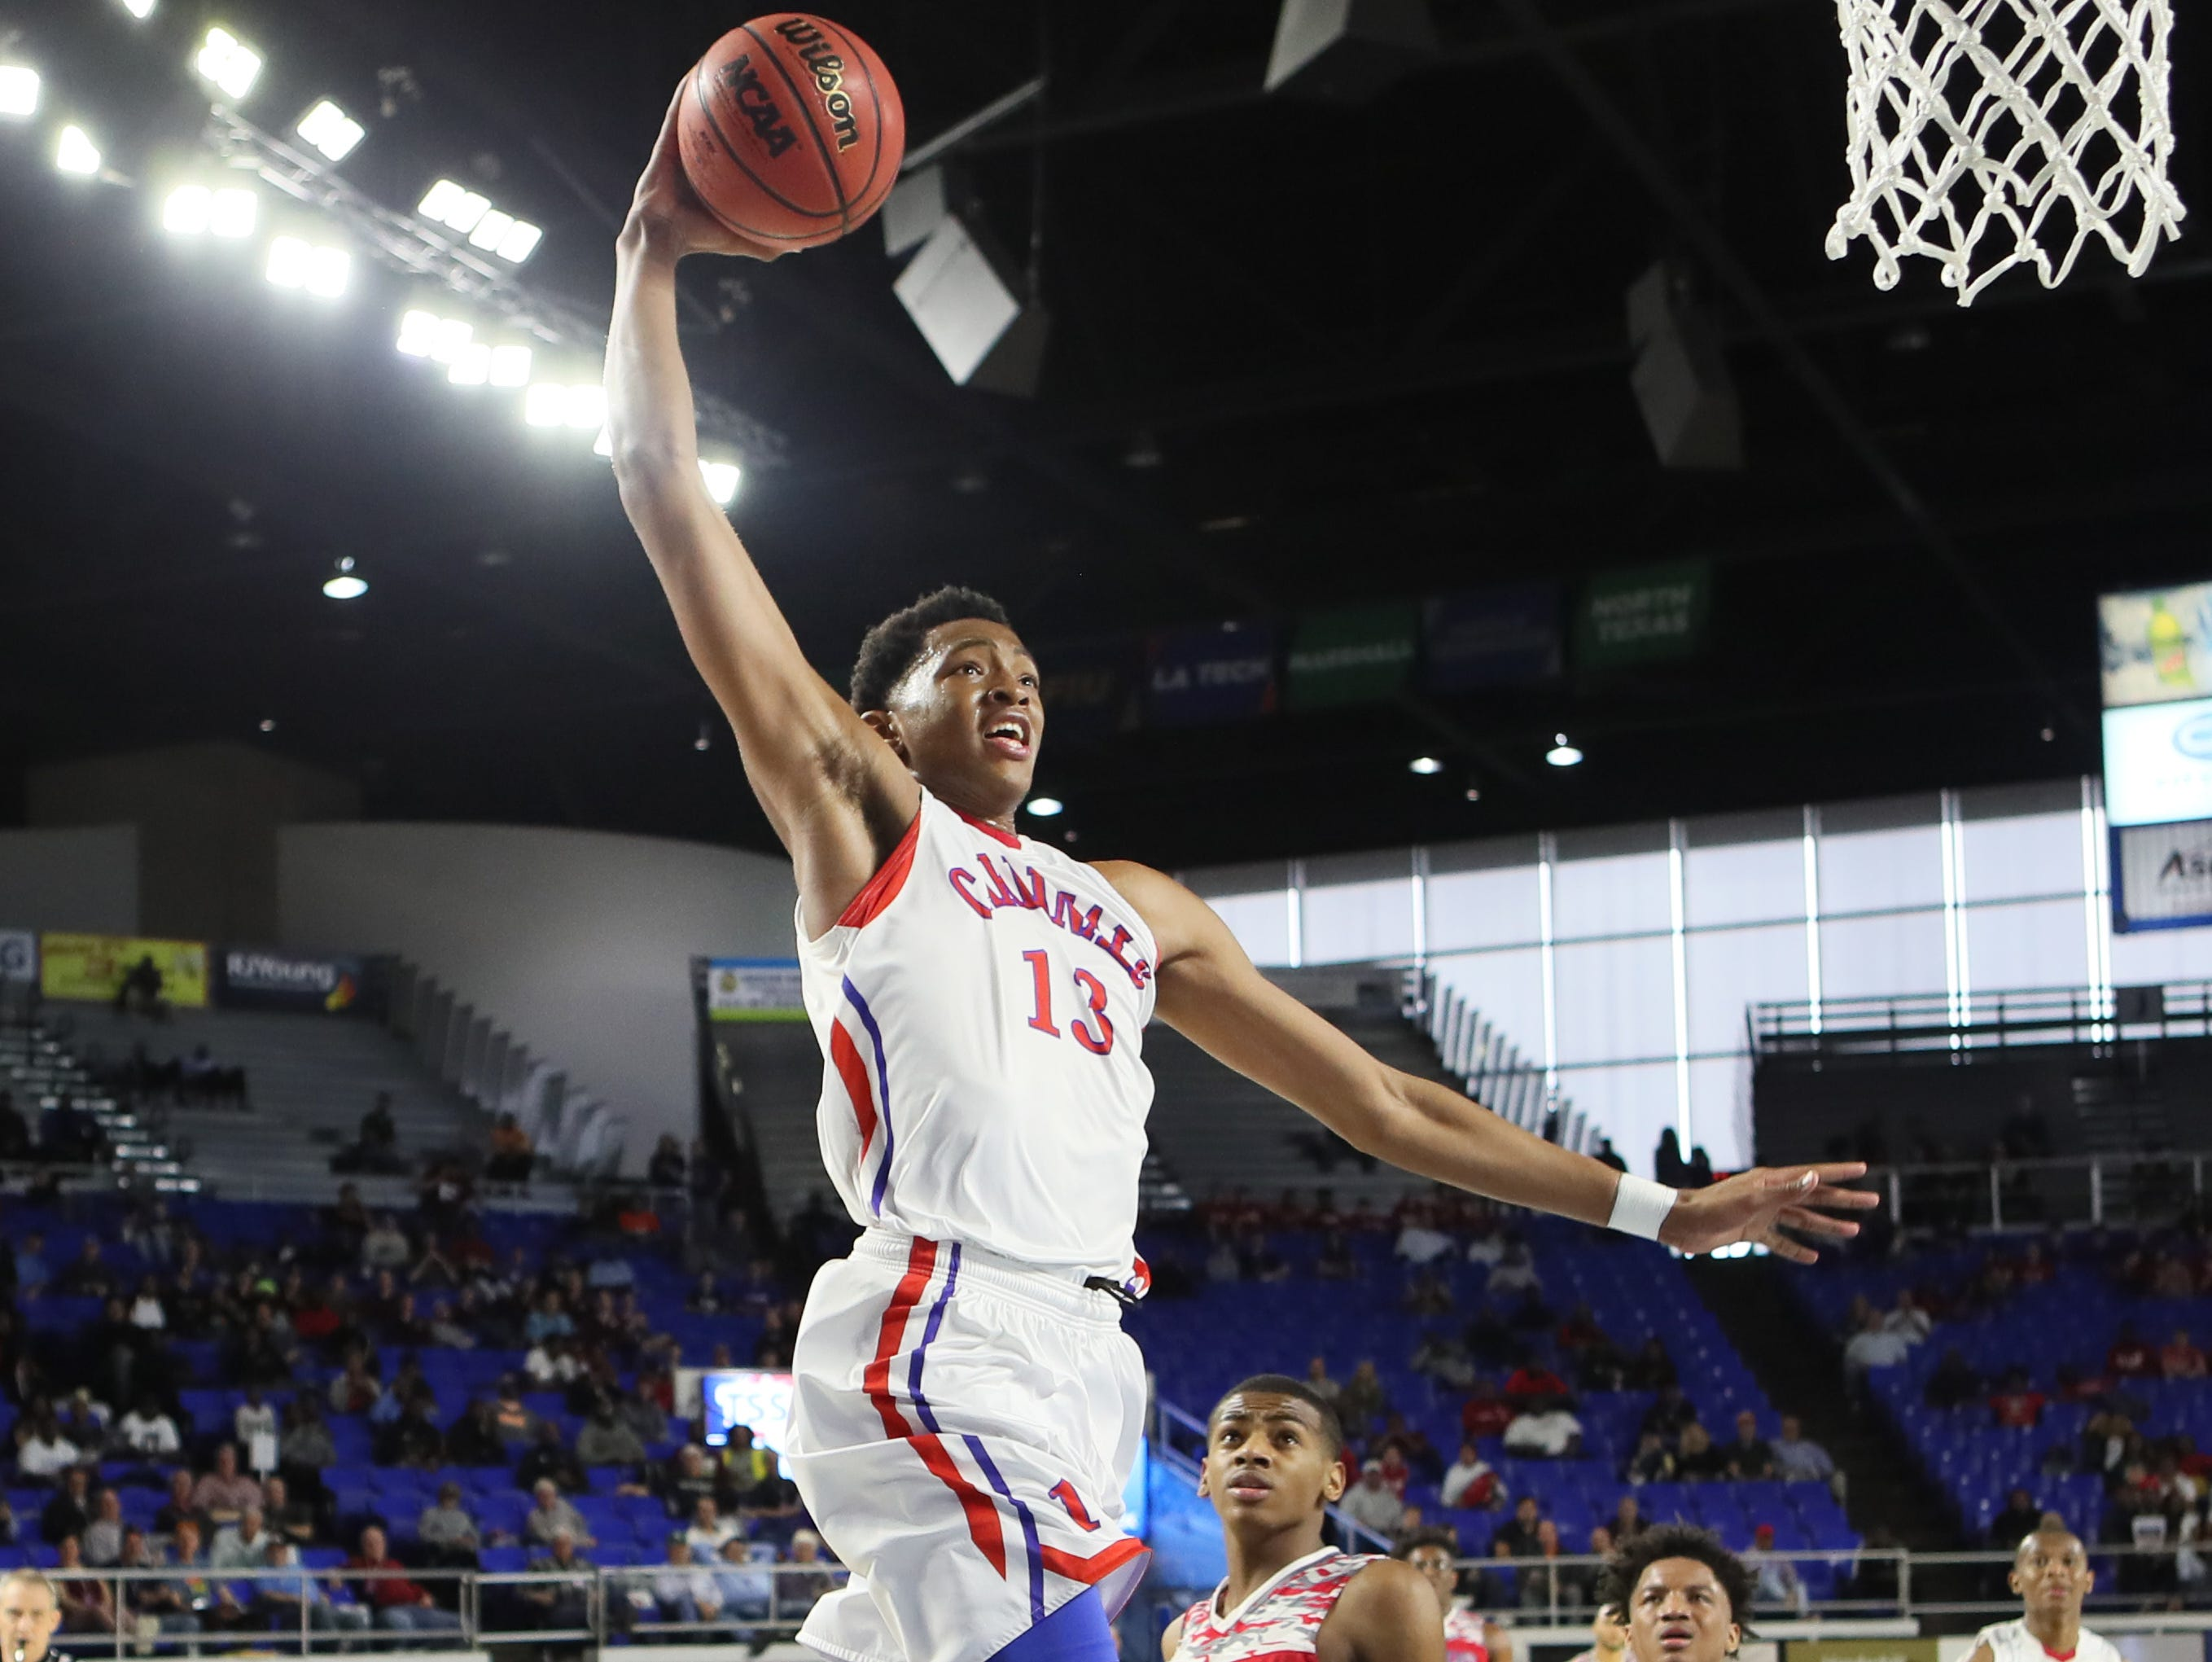 Wooddale's Chandler Lawson dunks the ball against Austin-East during the TSSAA Division I basketball state tournament in Murfreesboro on Wednesday, March 13, 2019.